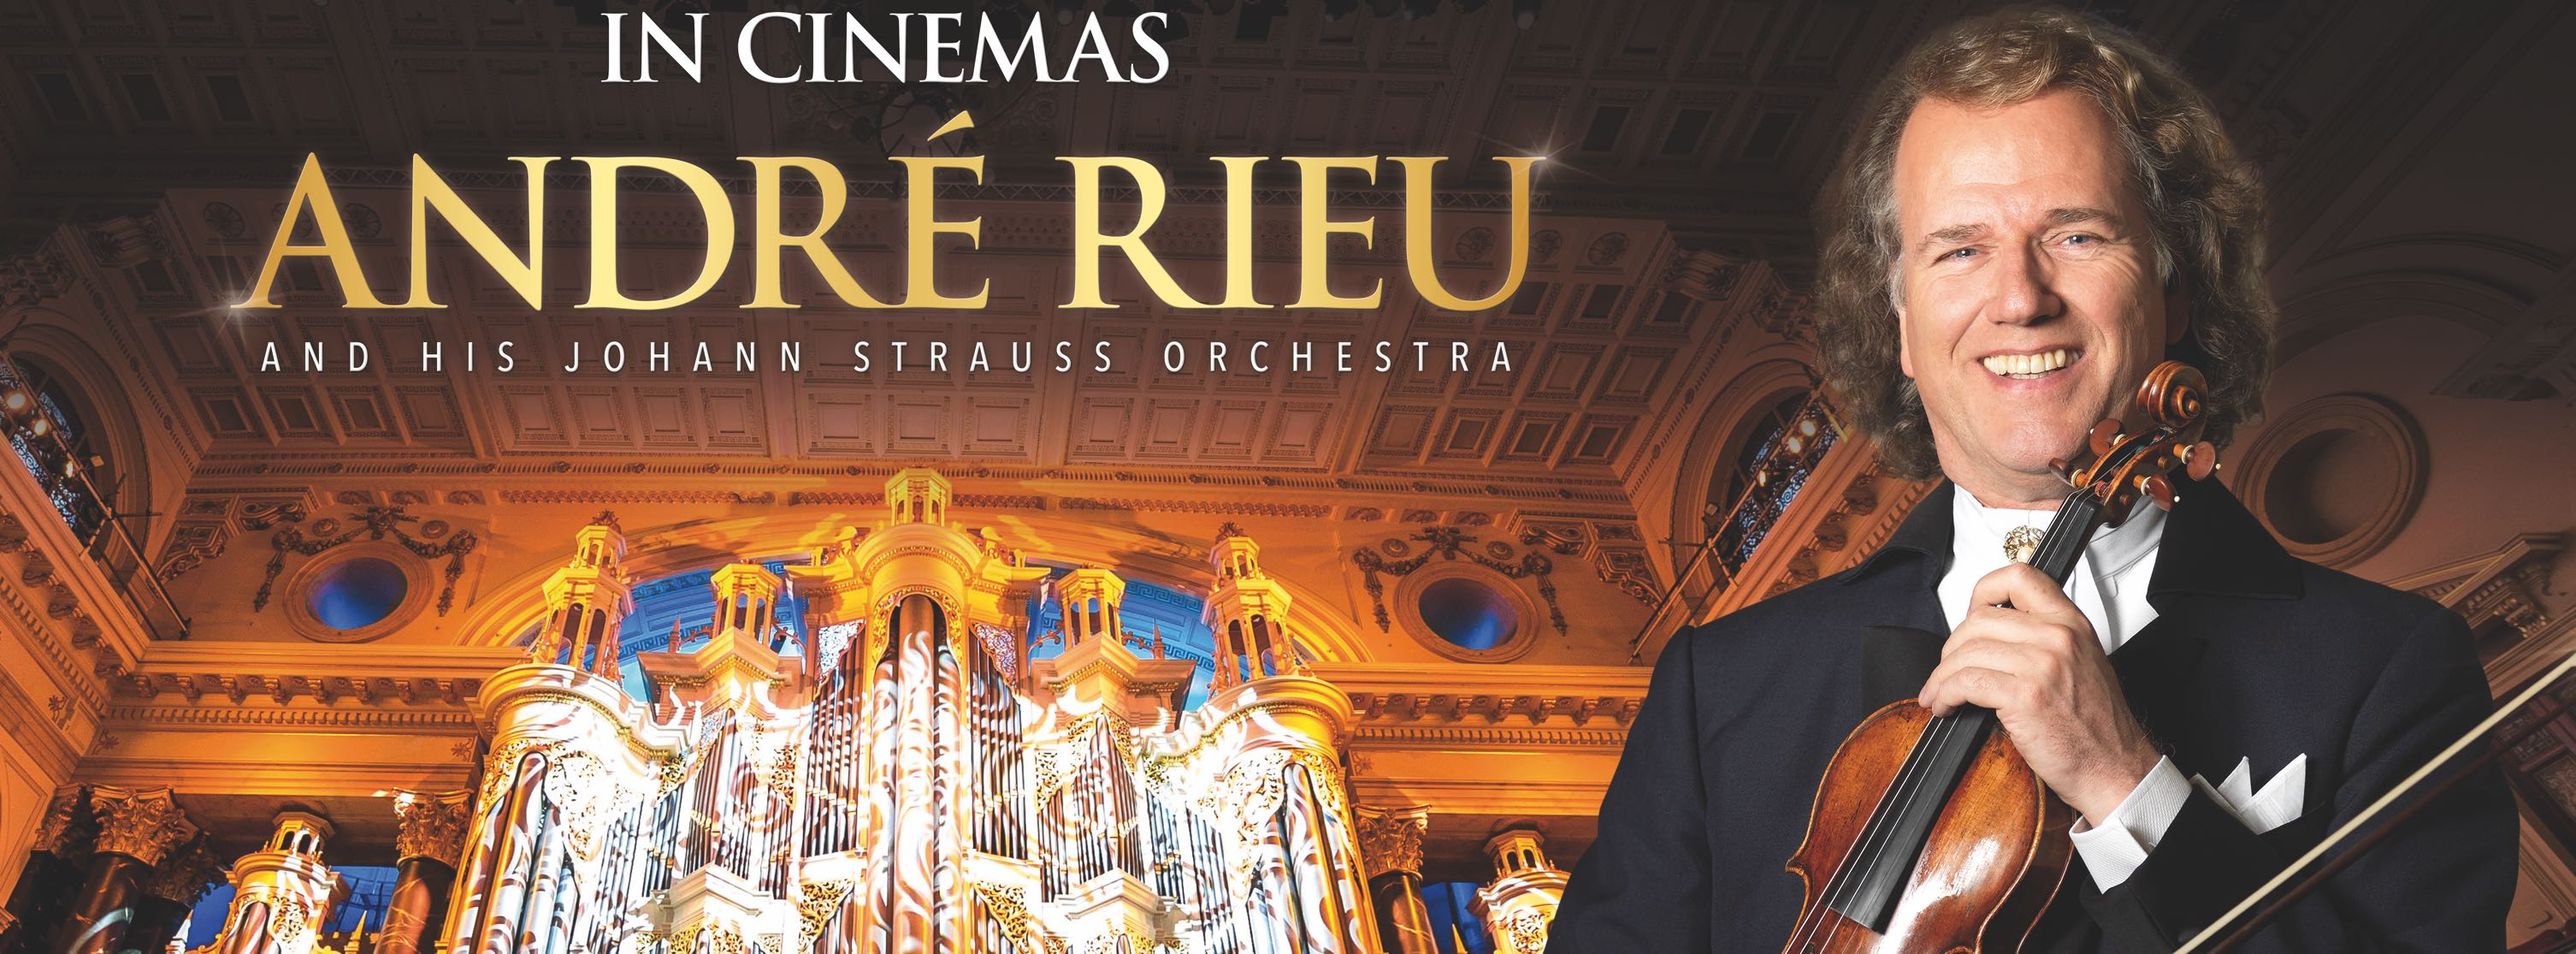 Andre-Rieus-Sydney-Town-Hall-Concert-_-A-Celebration-Trailer-and-Info